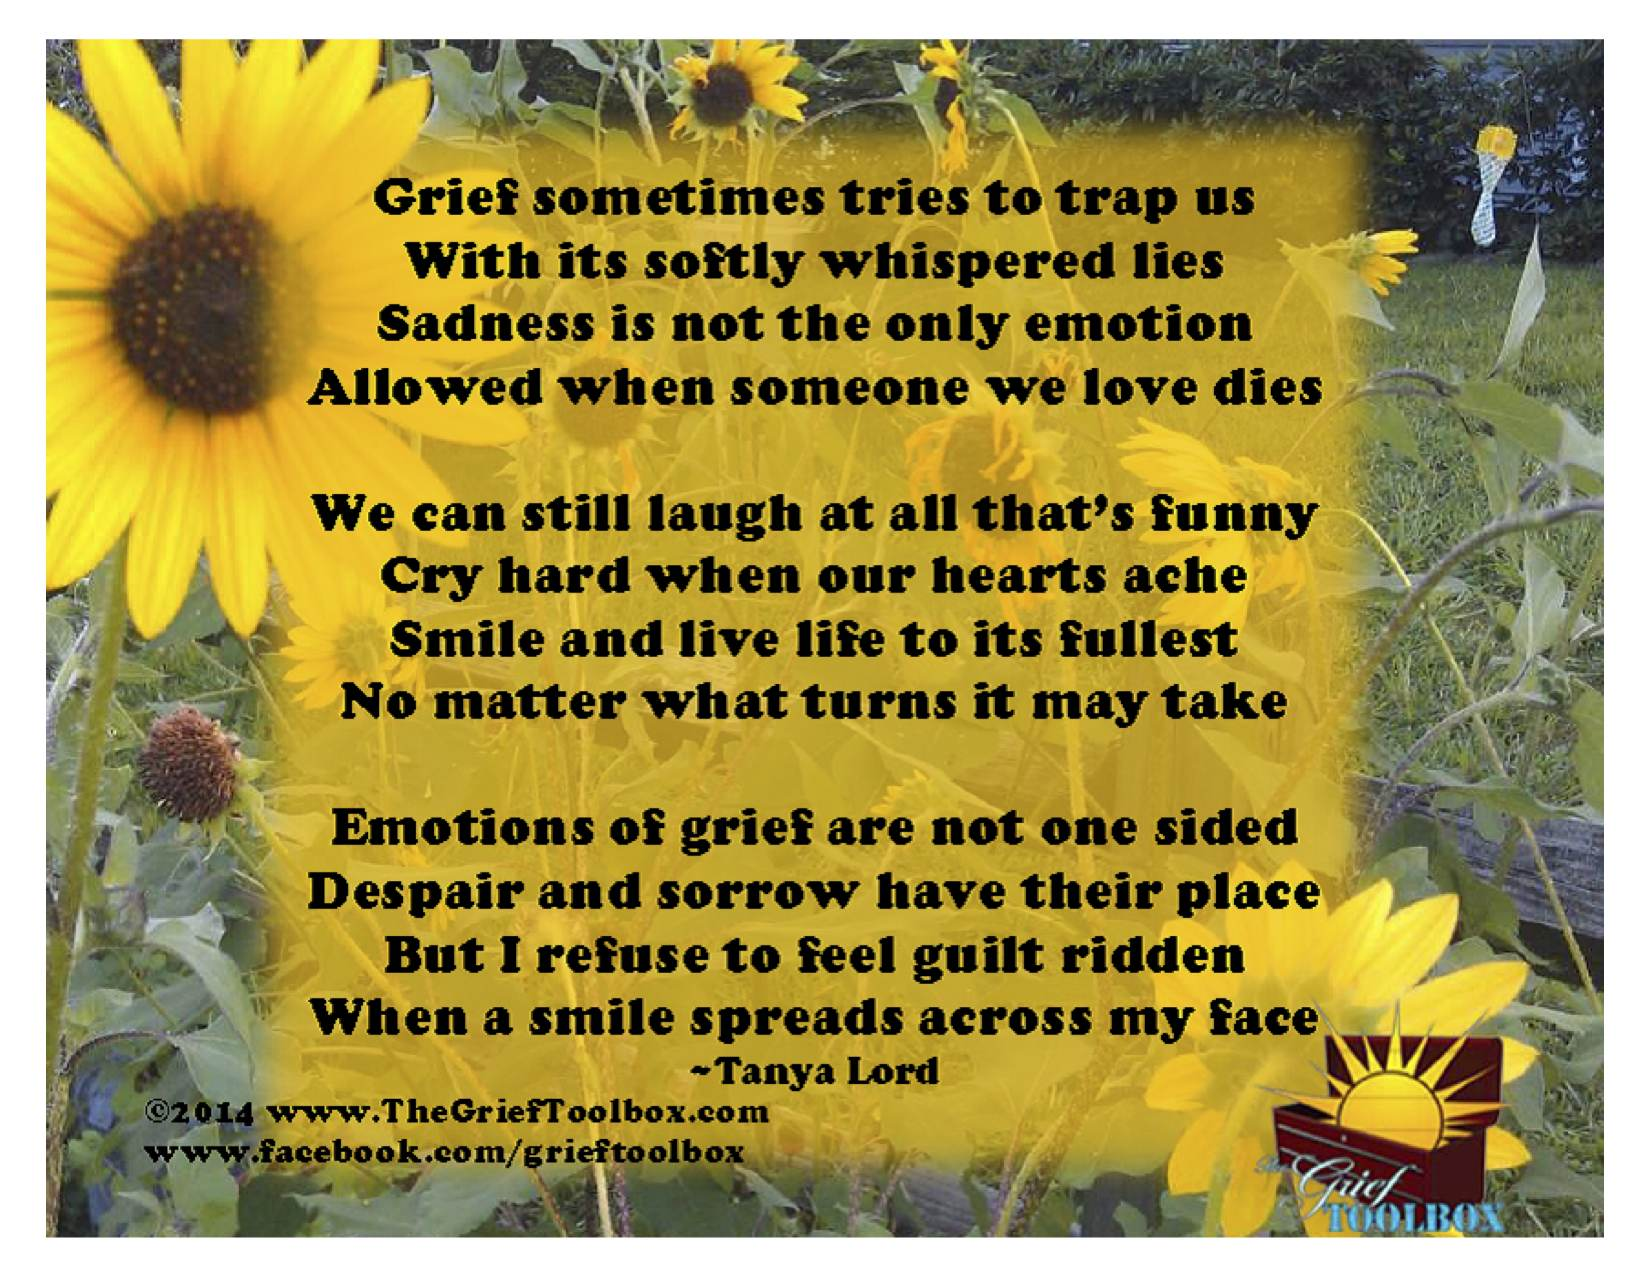 Griefs Emotions A Poem The Grief Toolbox